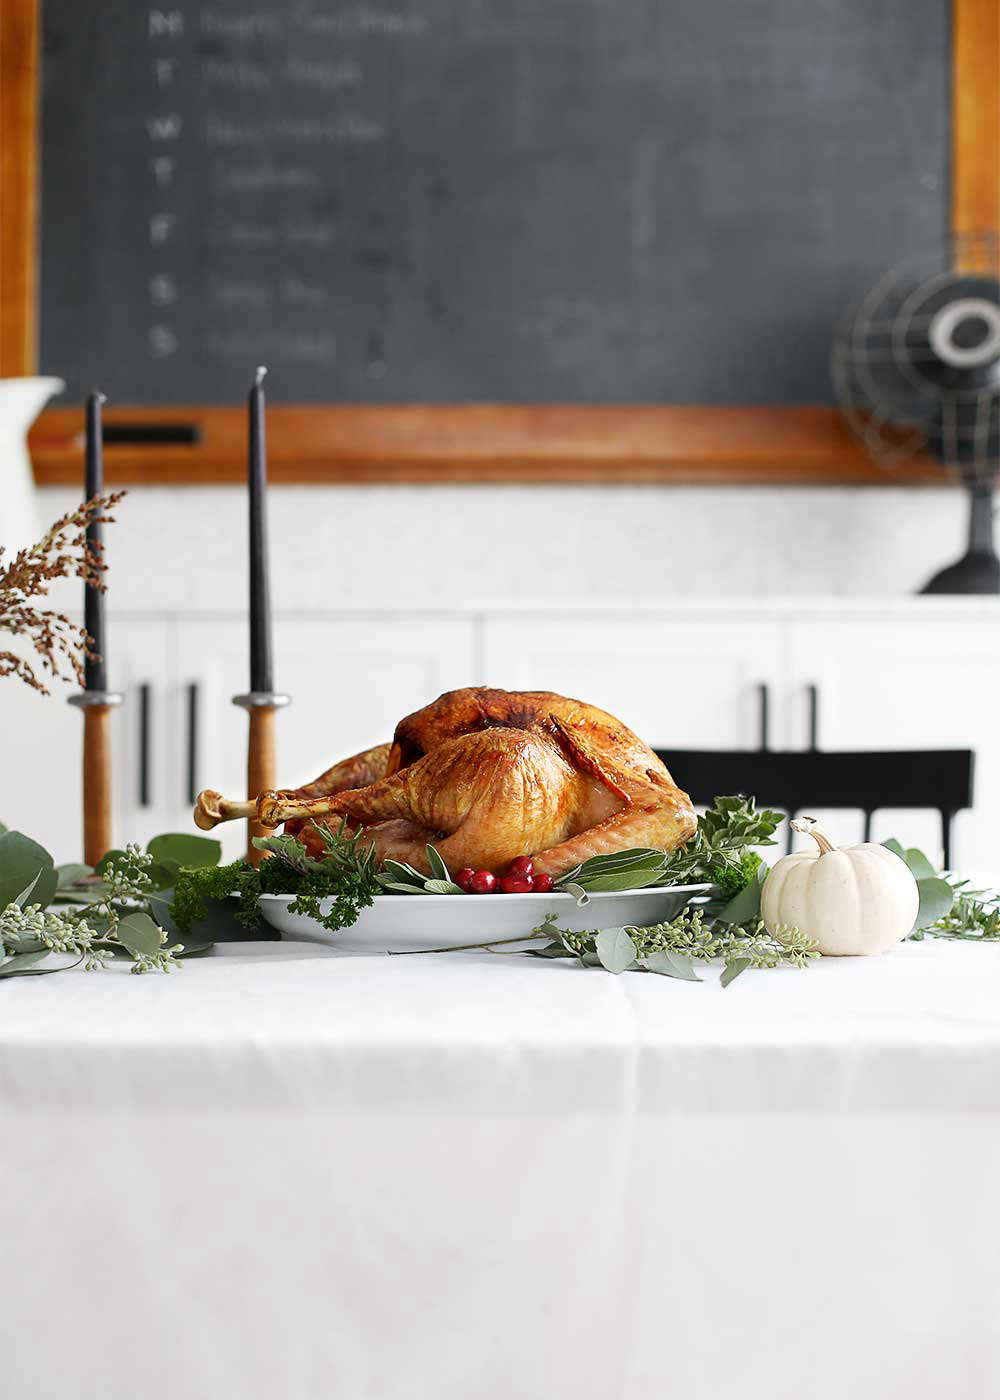 The Minimalist: The Only Five Things You Need to Cook a Delicious Thanksgiving Turkey